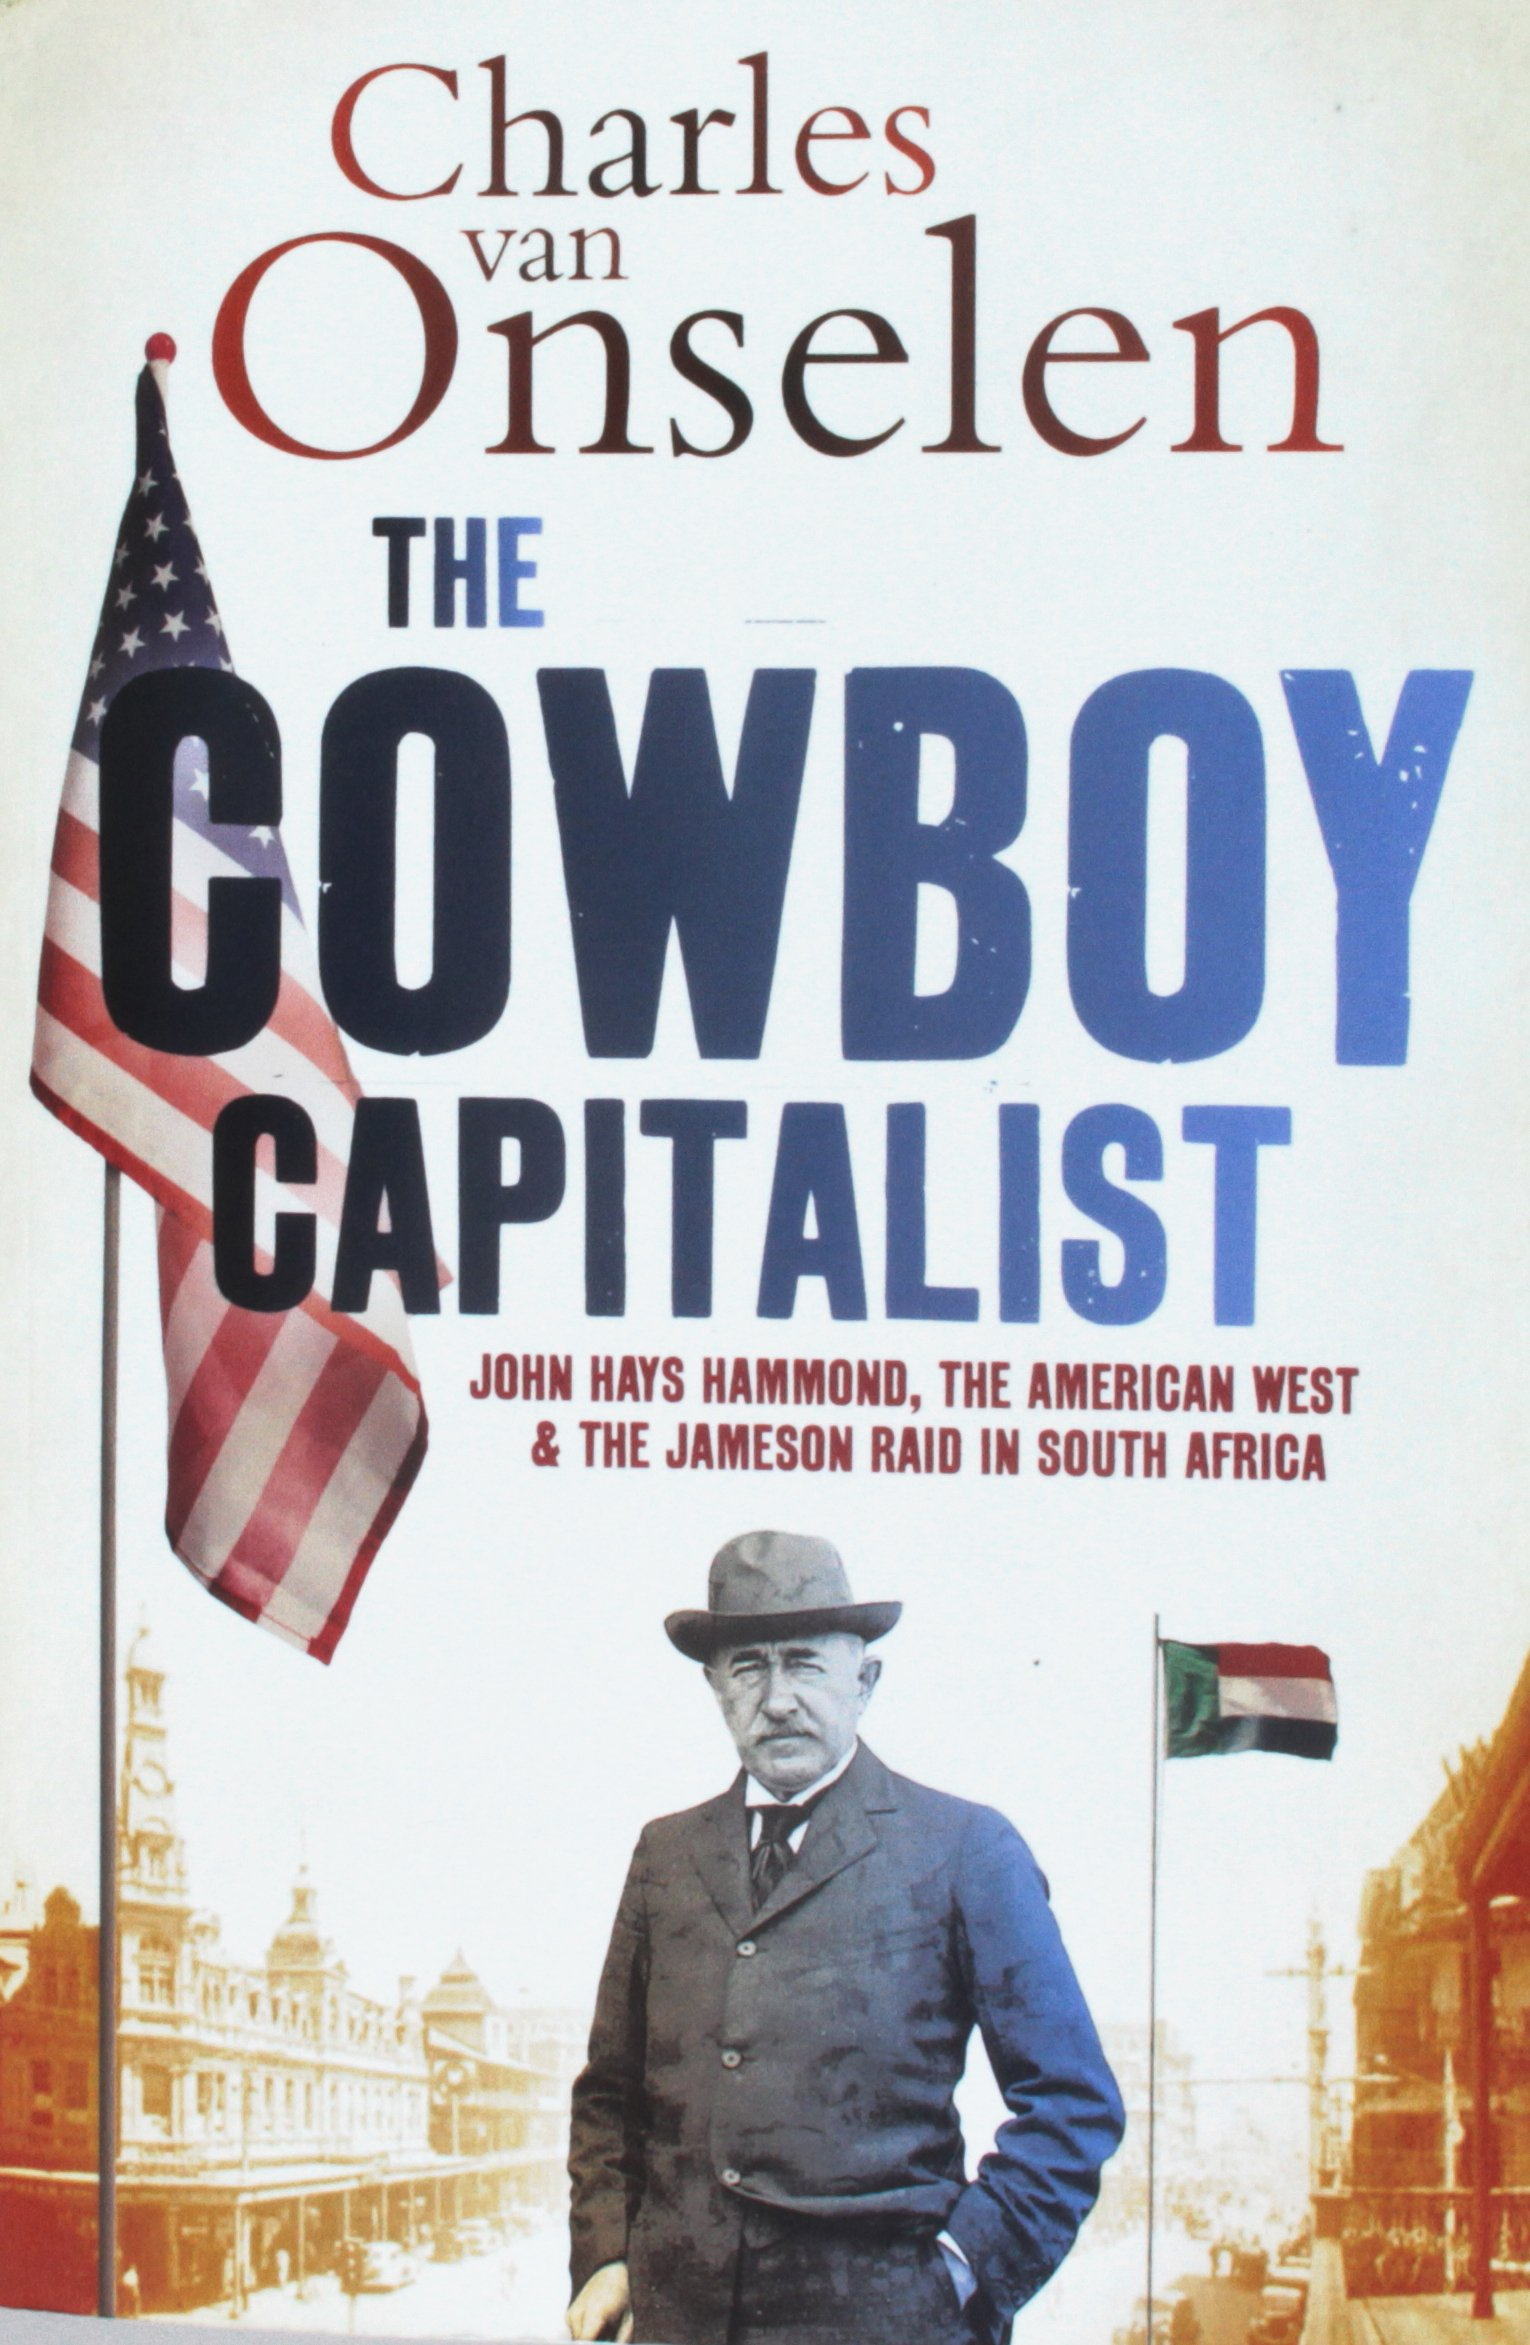 the-cowboy-capitalist-john-hays-hammond-the-american-west-and-the-jameson-raid-in-south-africa-reconsiderations-in-southern-african-history